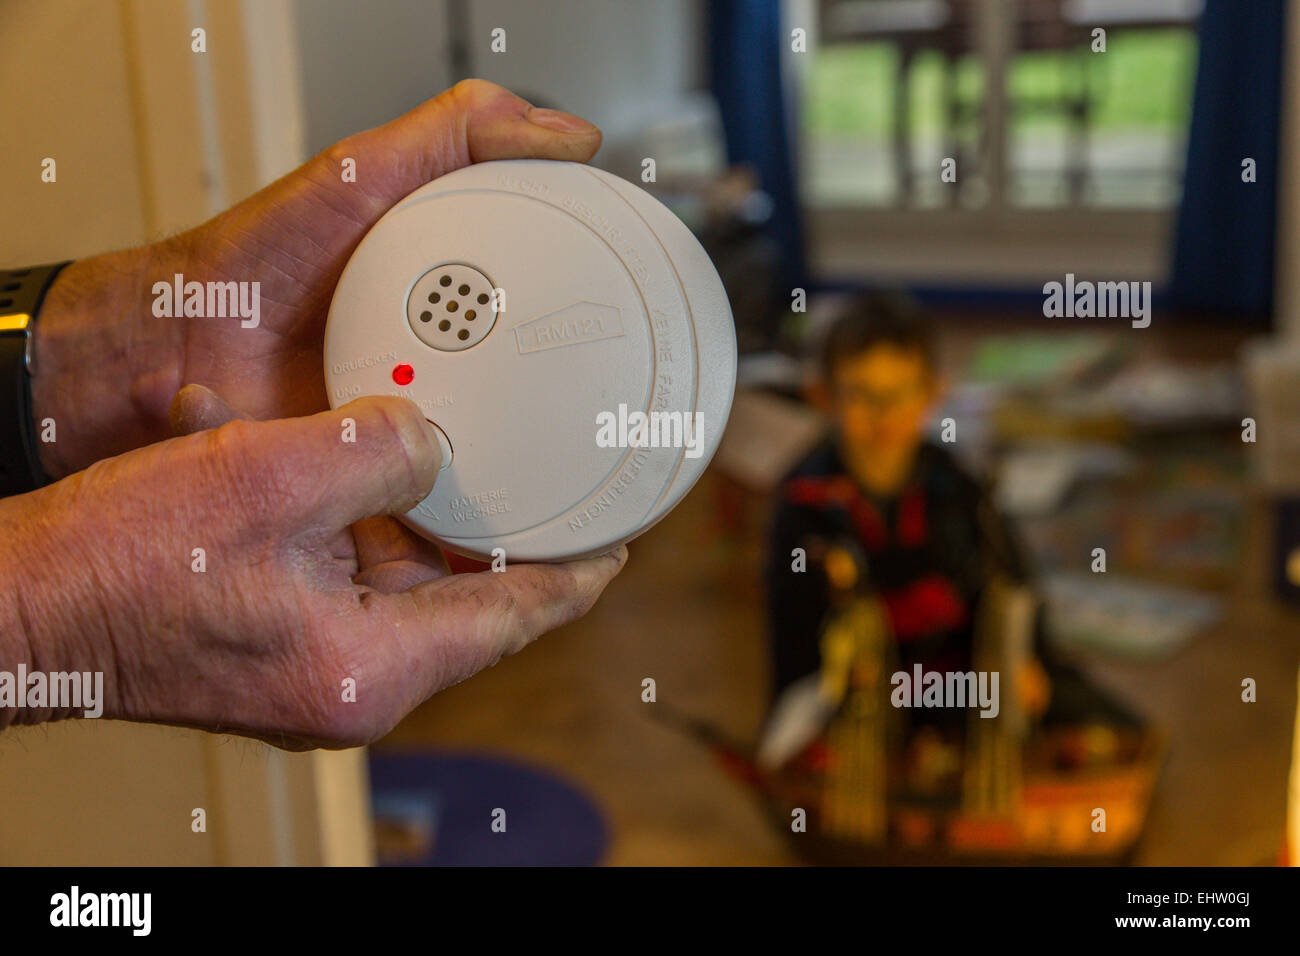 THE INSTALLATION OF A SMOKE DETECTOR TO PREVENT FIRE IN APPARTMENT - Stock Image